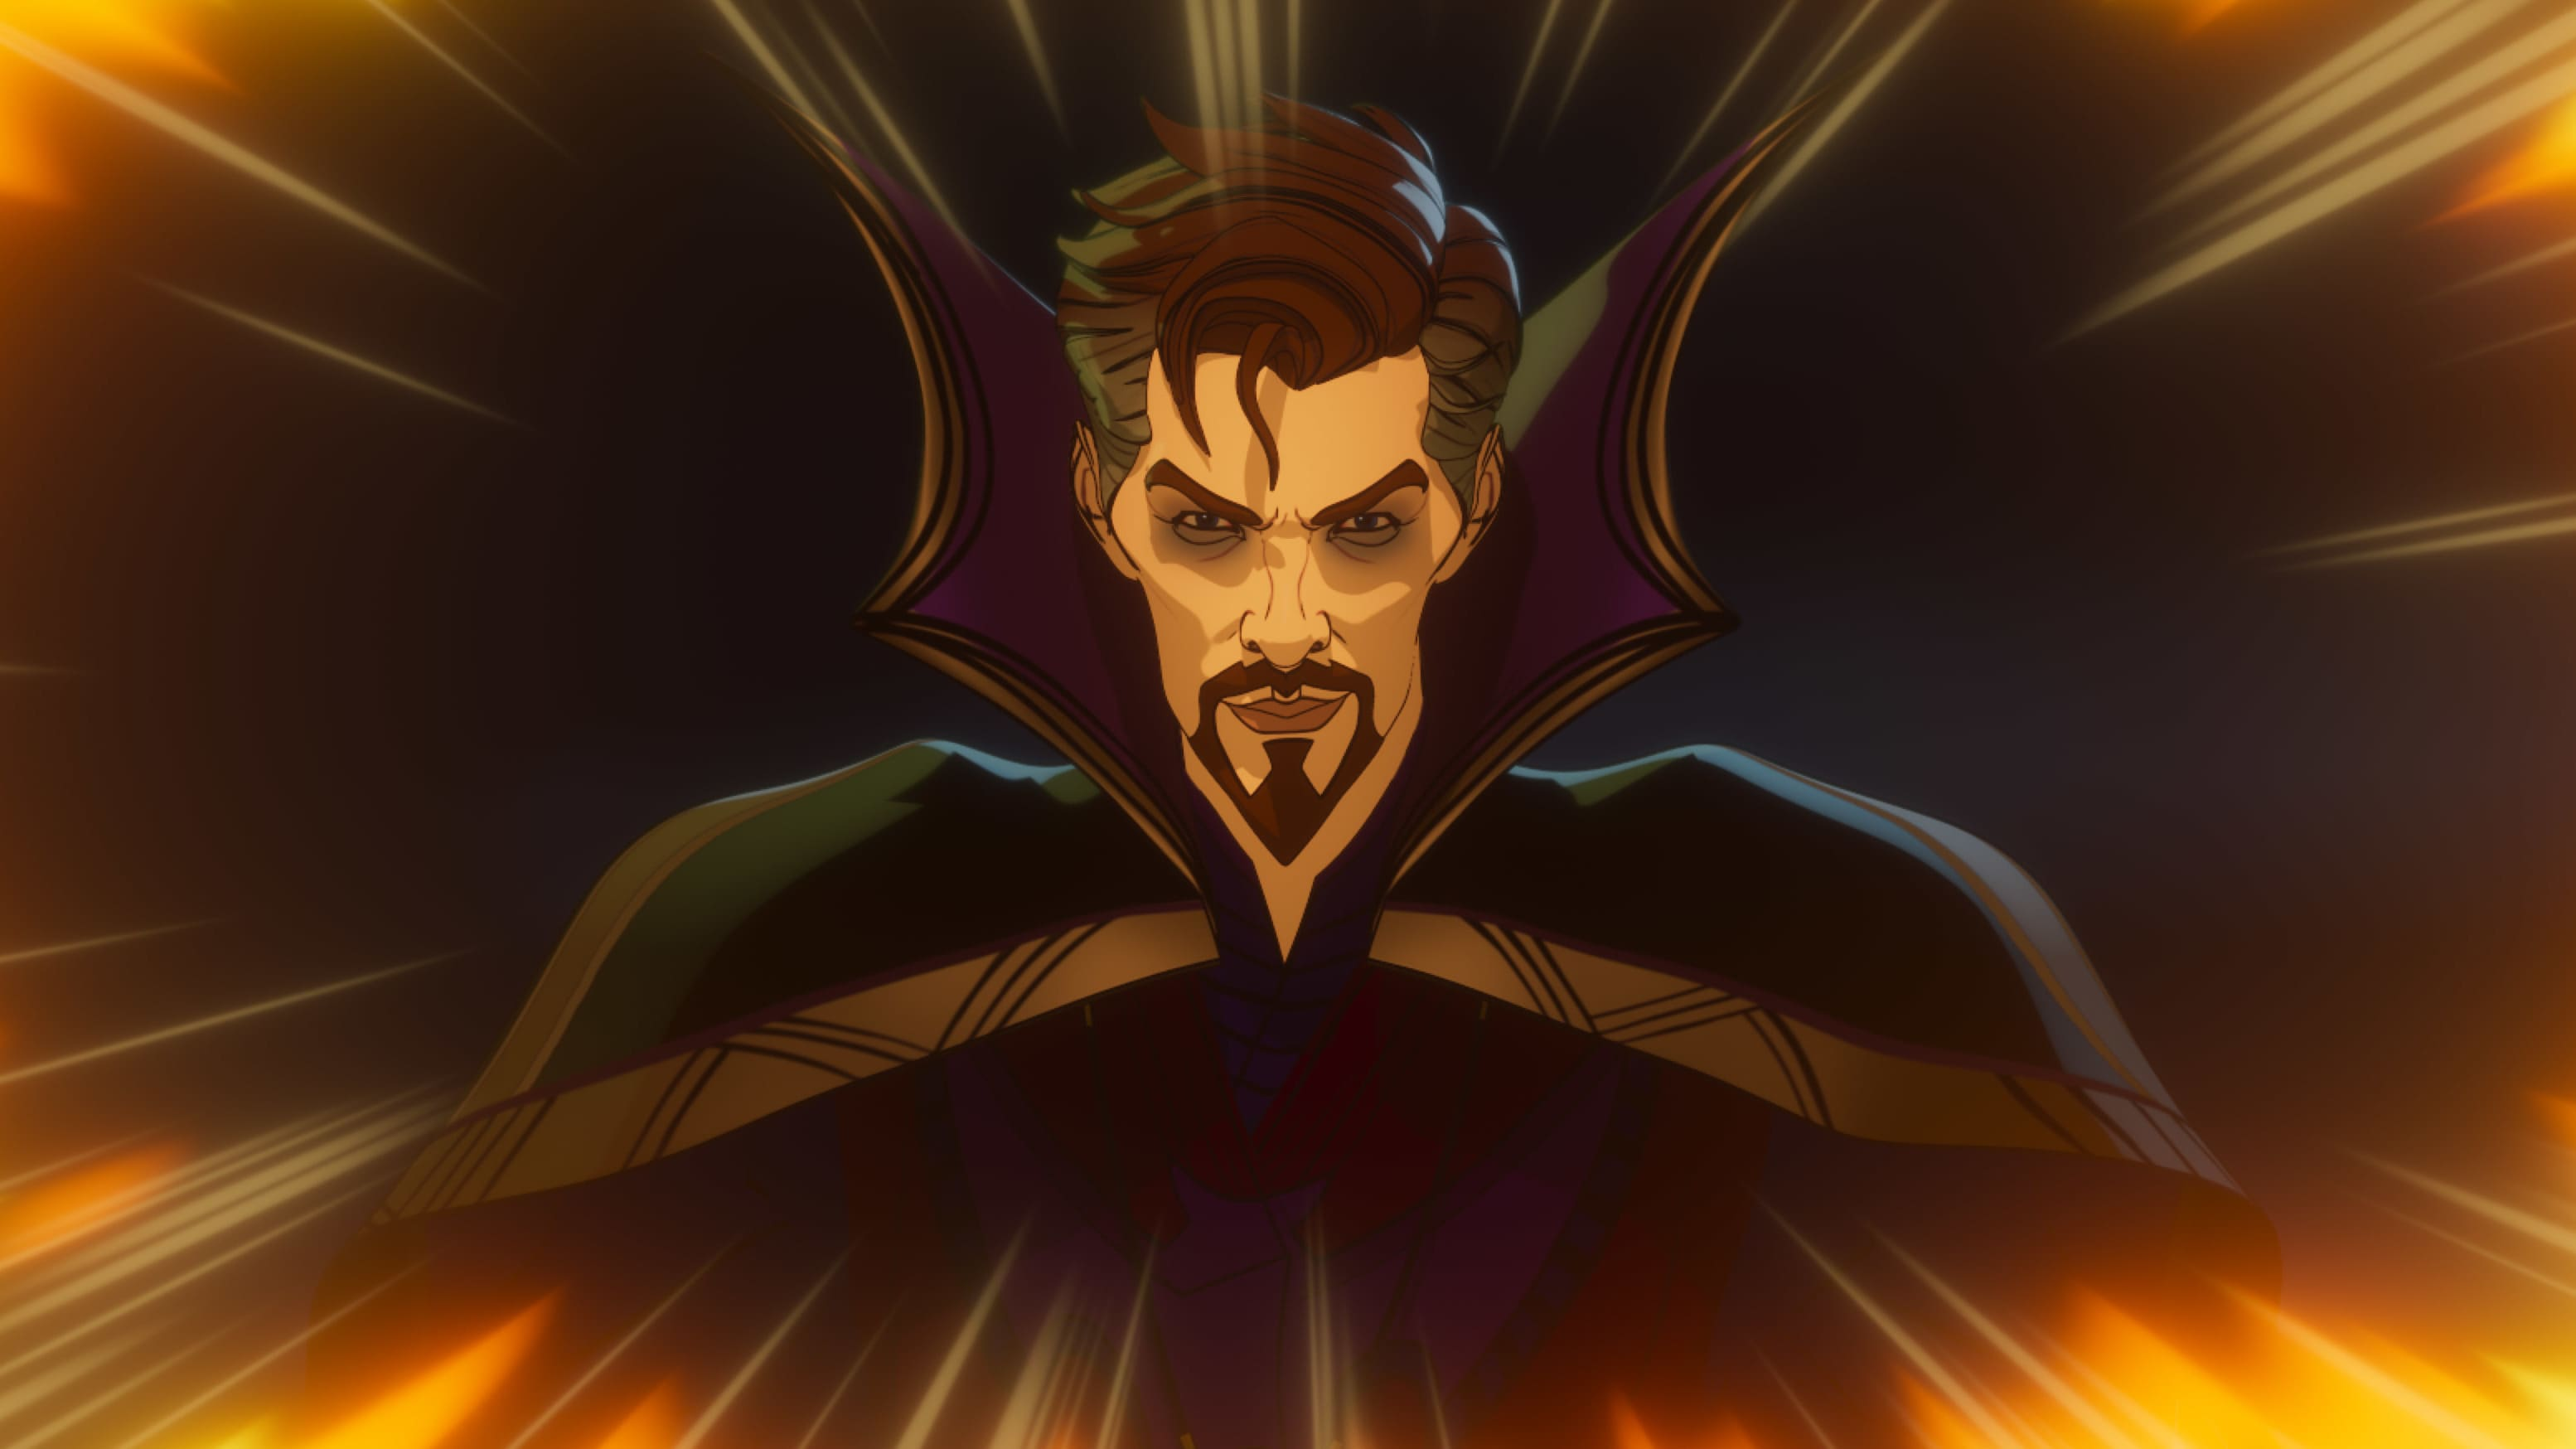 Doctor Strange Supreme in Marvel Studios' WHAT IF…? exclusively on Disney+. ©Marvel Studios 2021. All Rights Reserved.